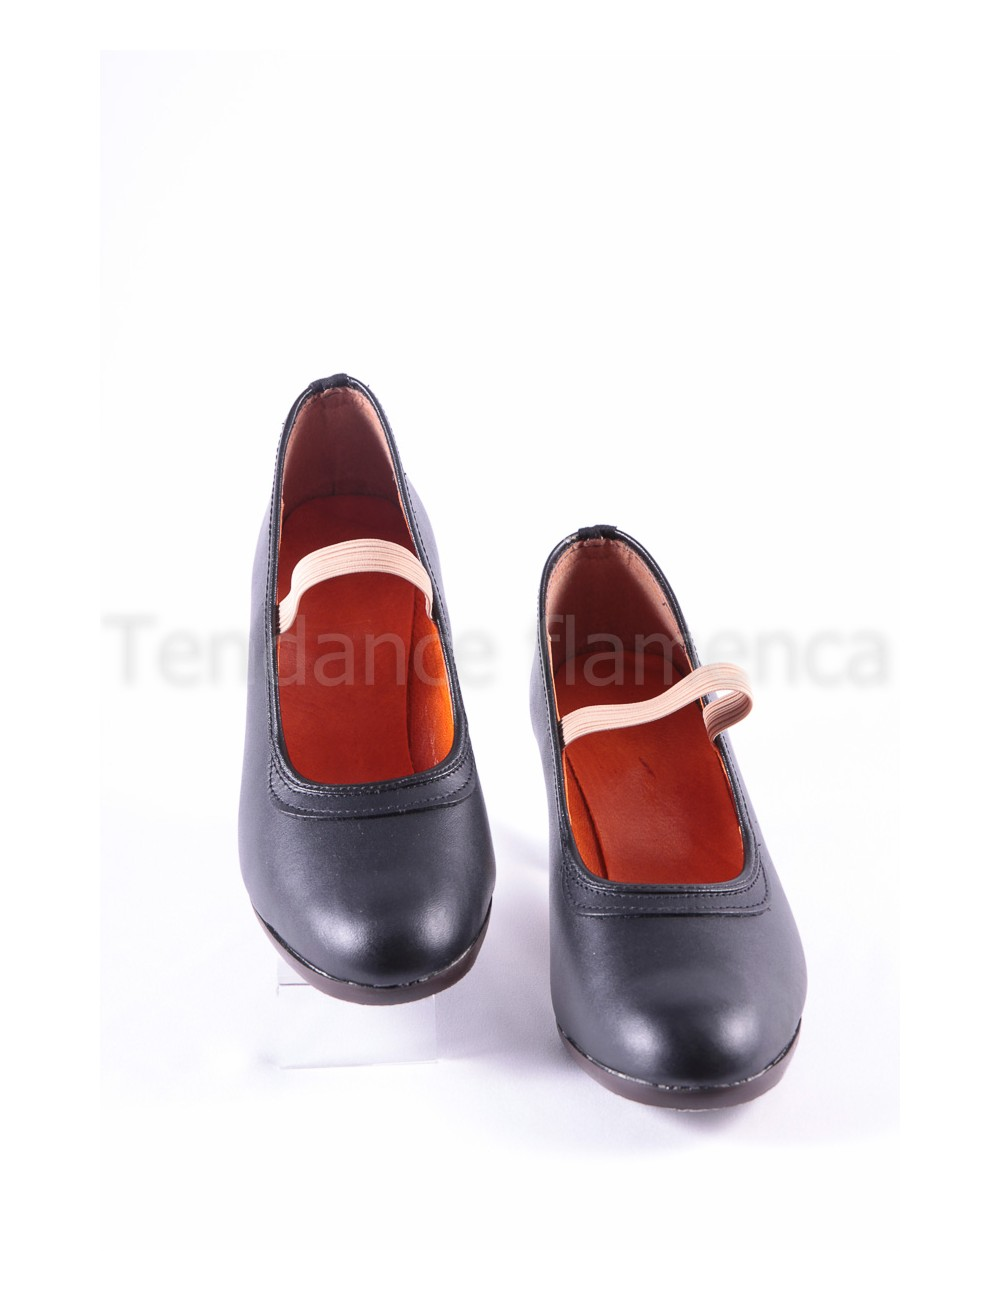 Chaussures OLE M41